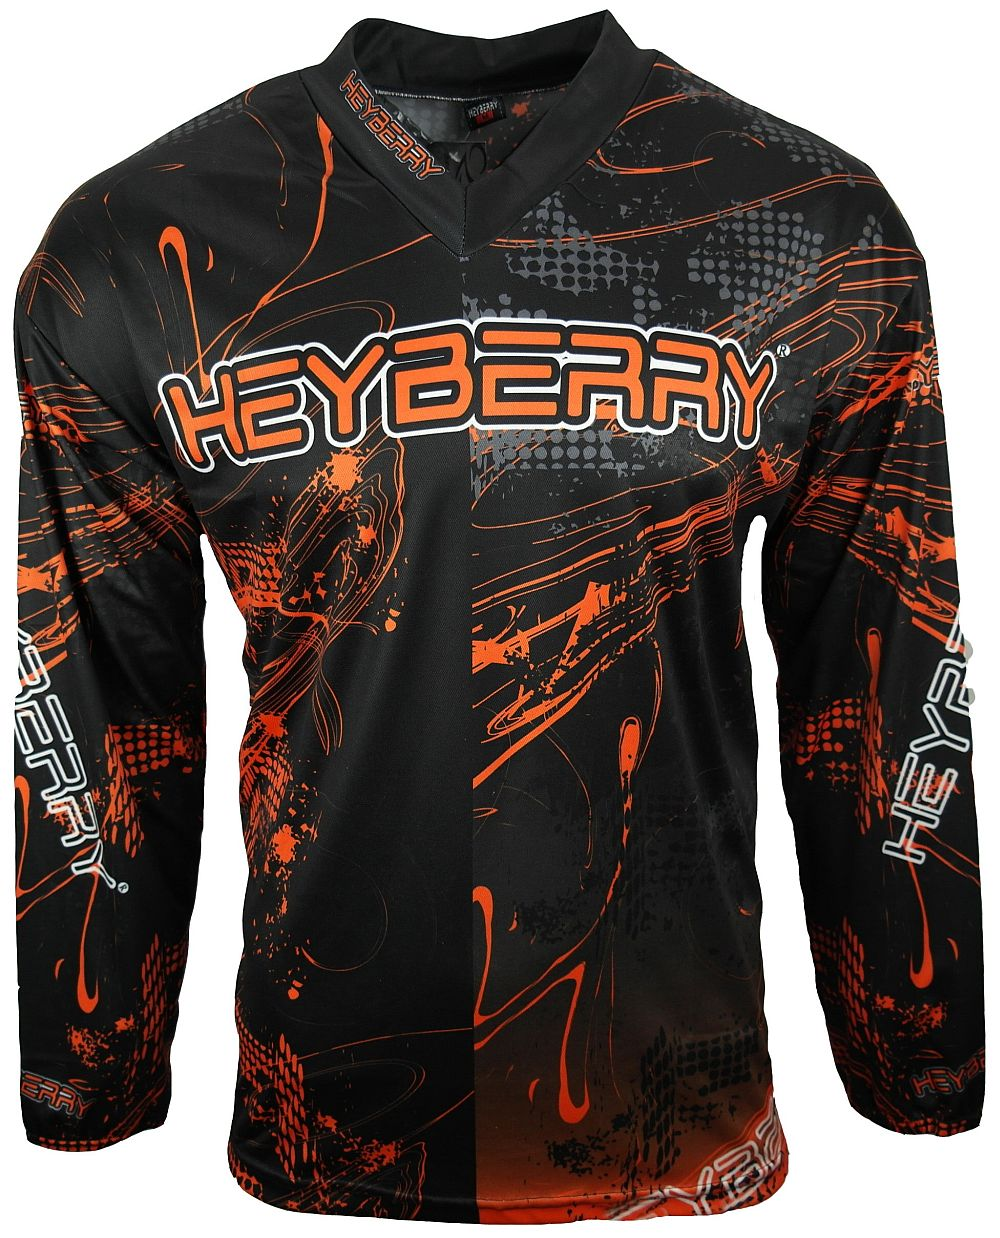 Heyberry Motocross MX Shirt Jersey Trikot schwarz orange Gr. M - XXL